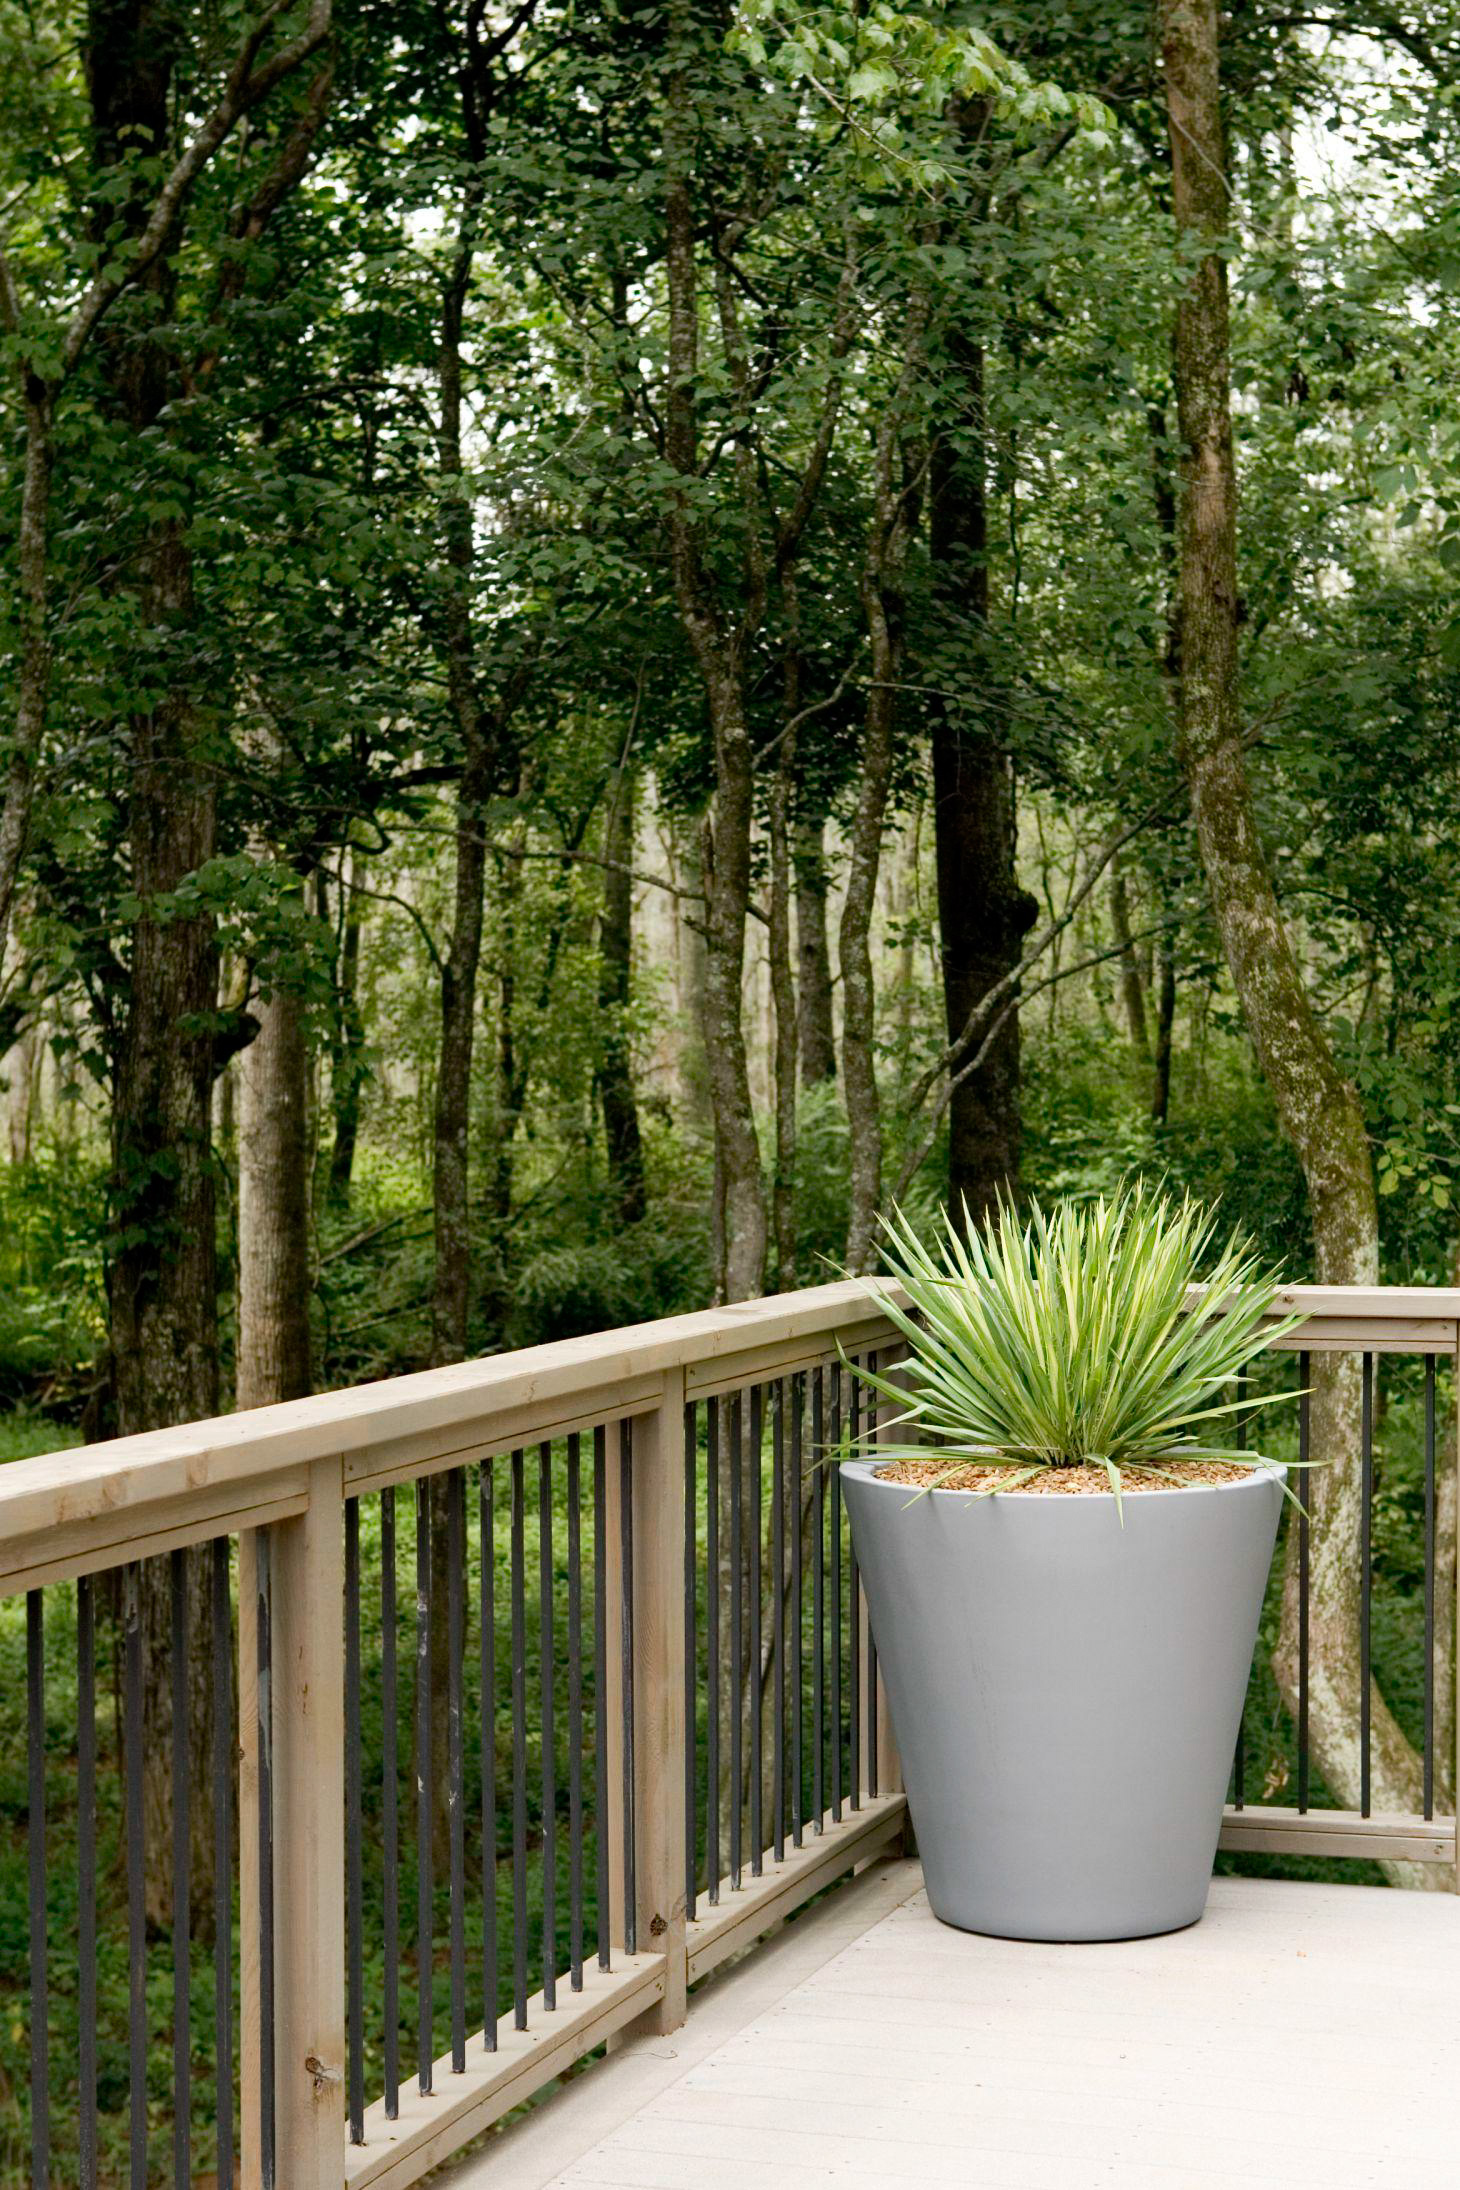 Deck railing ideas Diy Potted Plant In Corner Of Wood Deck Railing Trees Yard Better Homes And Gardens Deck Railing Ideas